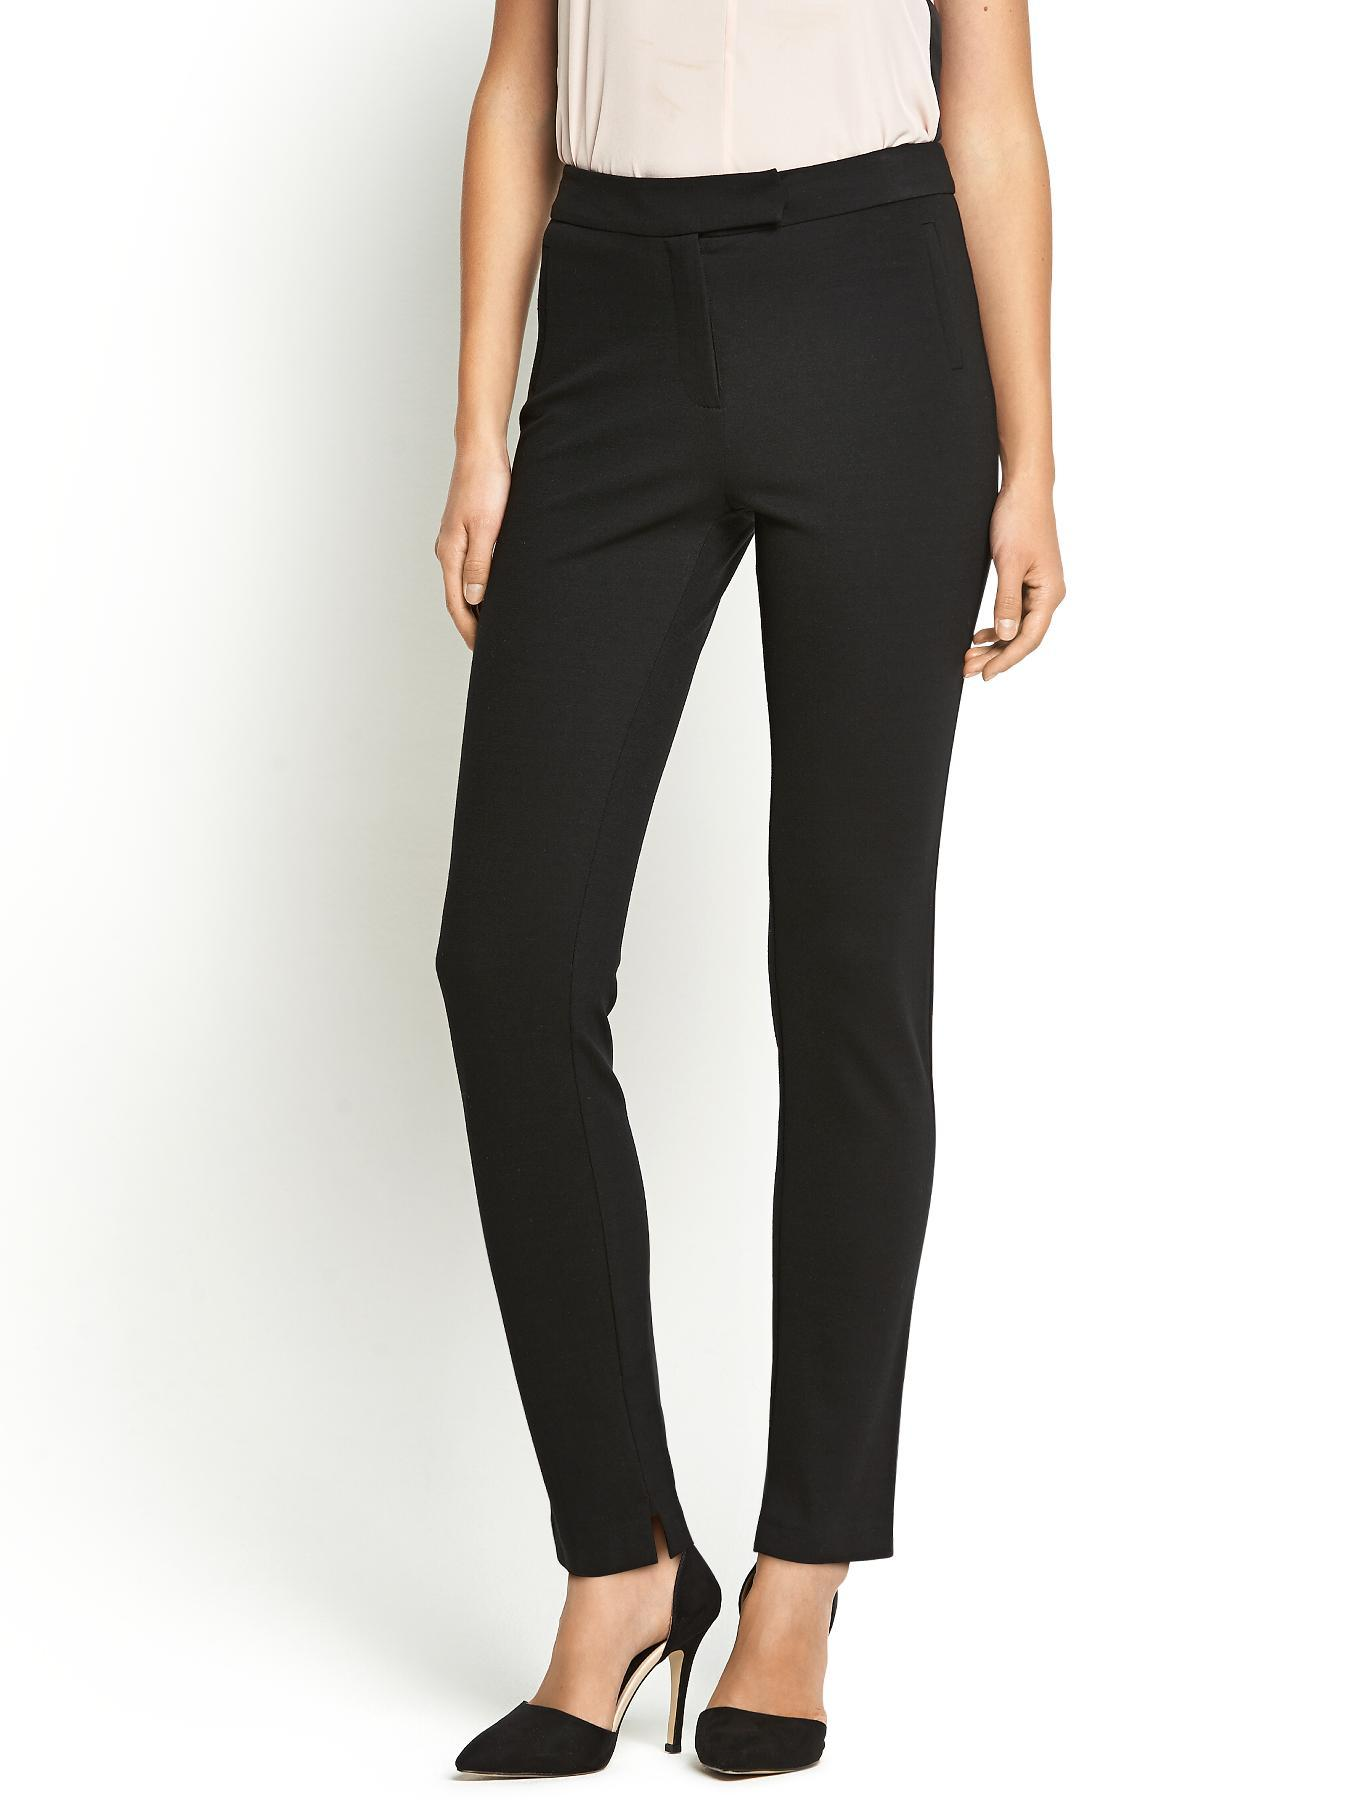 Ponteroma Essential Slim Trousers, Black